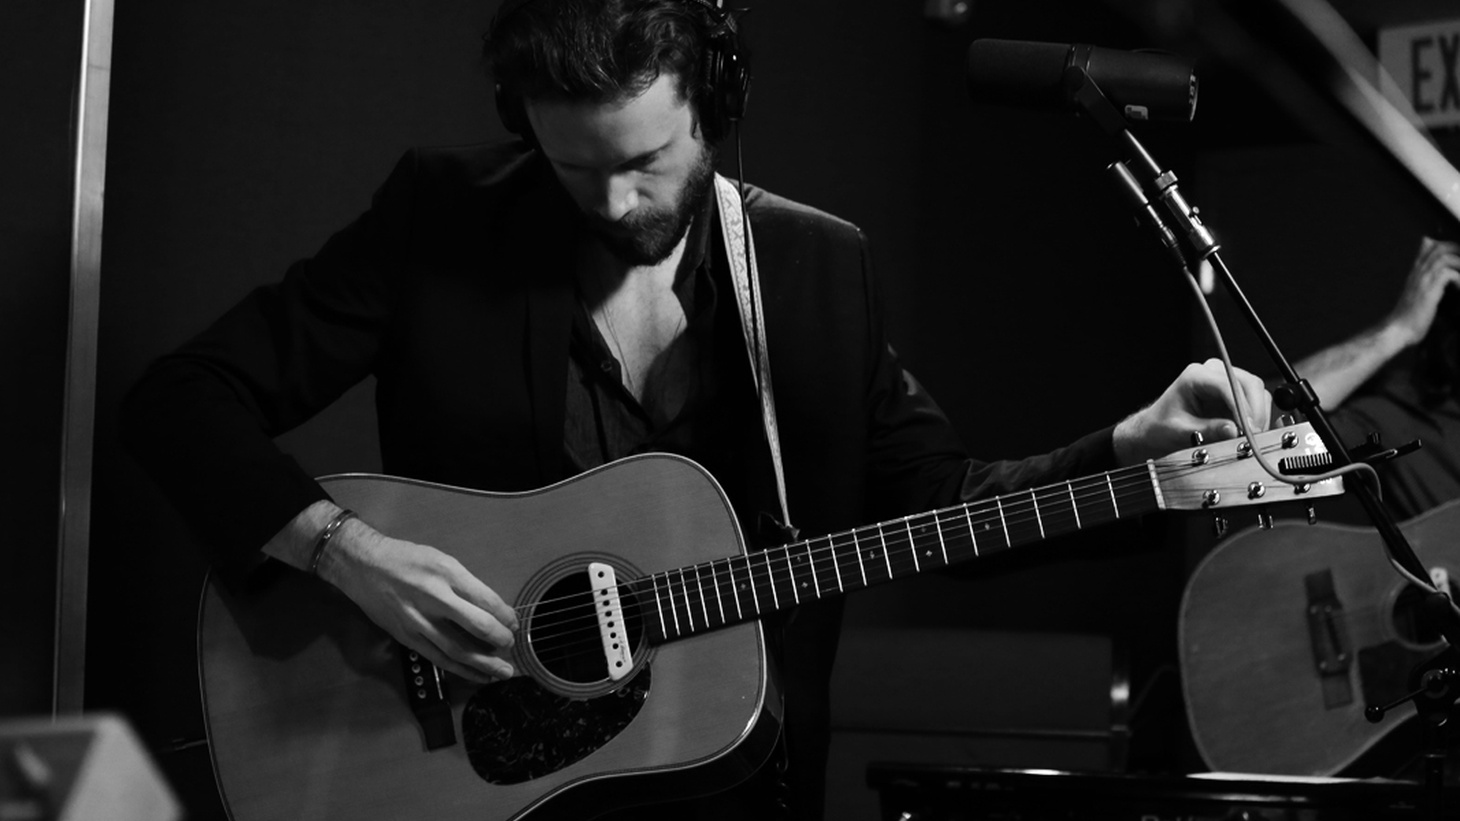 Father John Misty is an intriguing character created by former Fleet Foxes drummer J. Tillman. He took the music world by storm with his 2012 debut and his sophomore album,I Love You, Honeybear, explores married love.